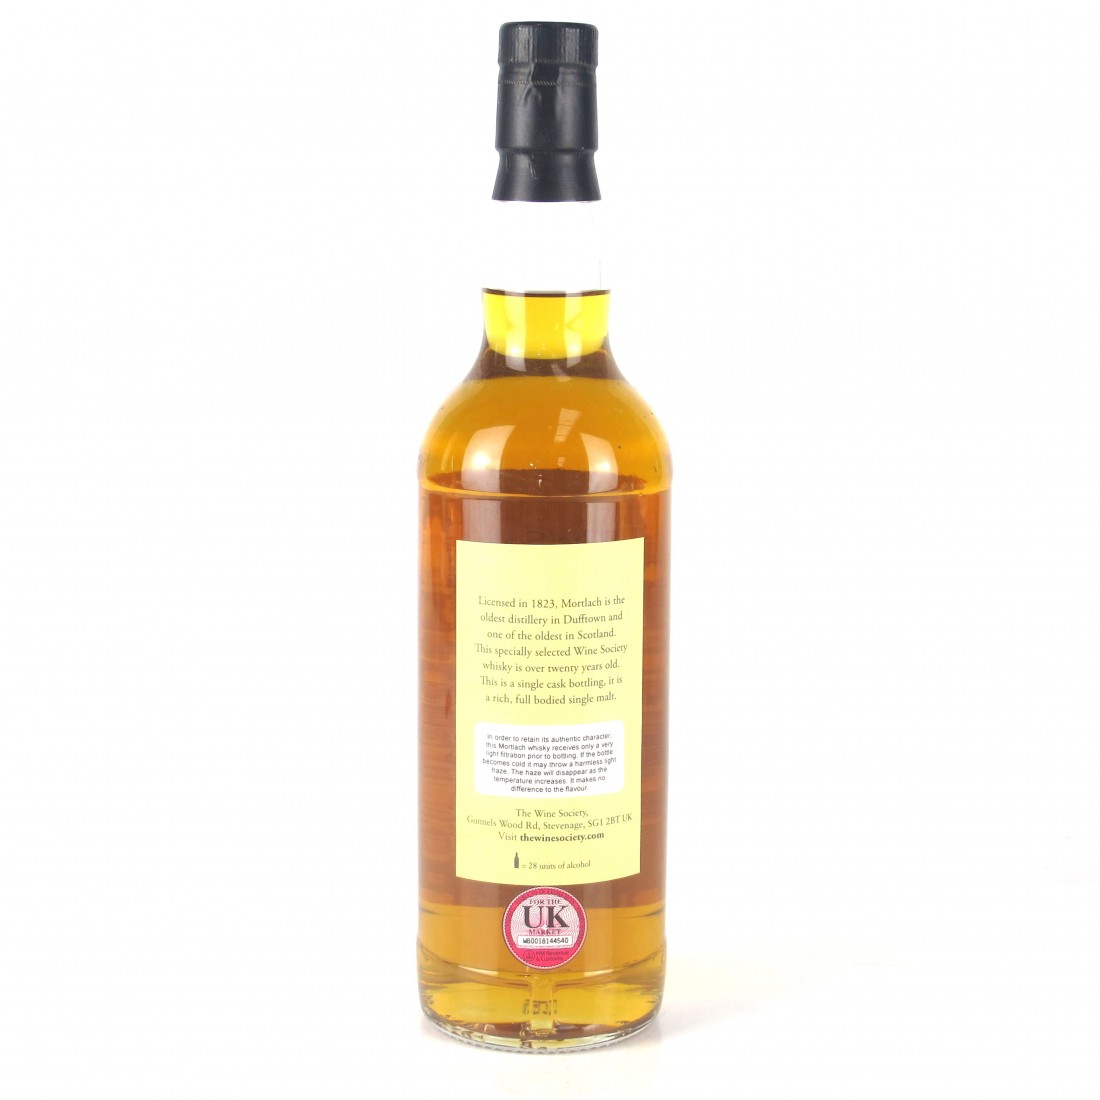 Mortlach 17 Year Old / The Wine Society